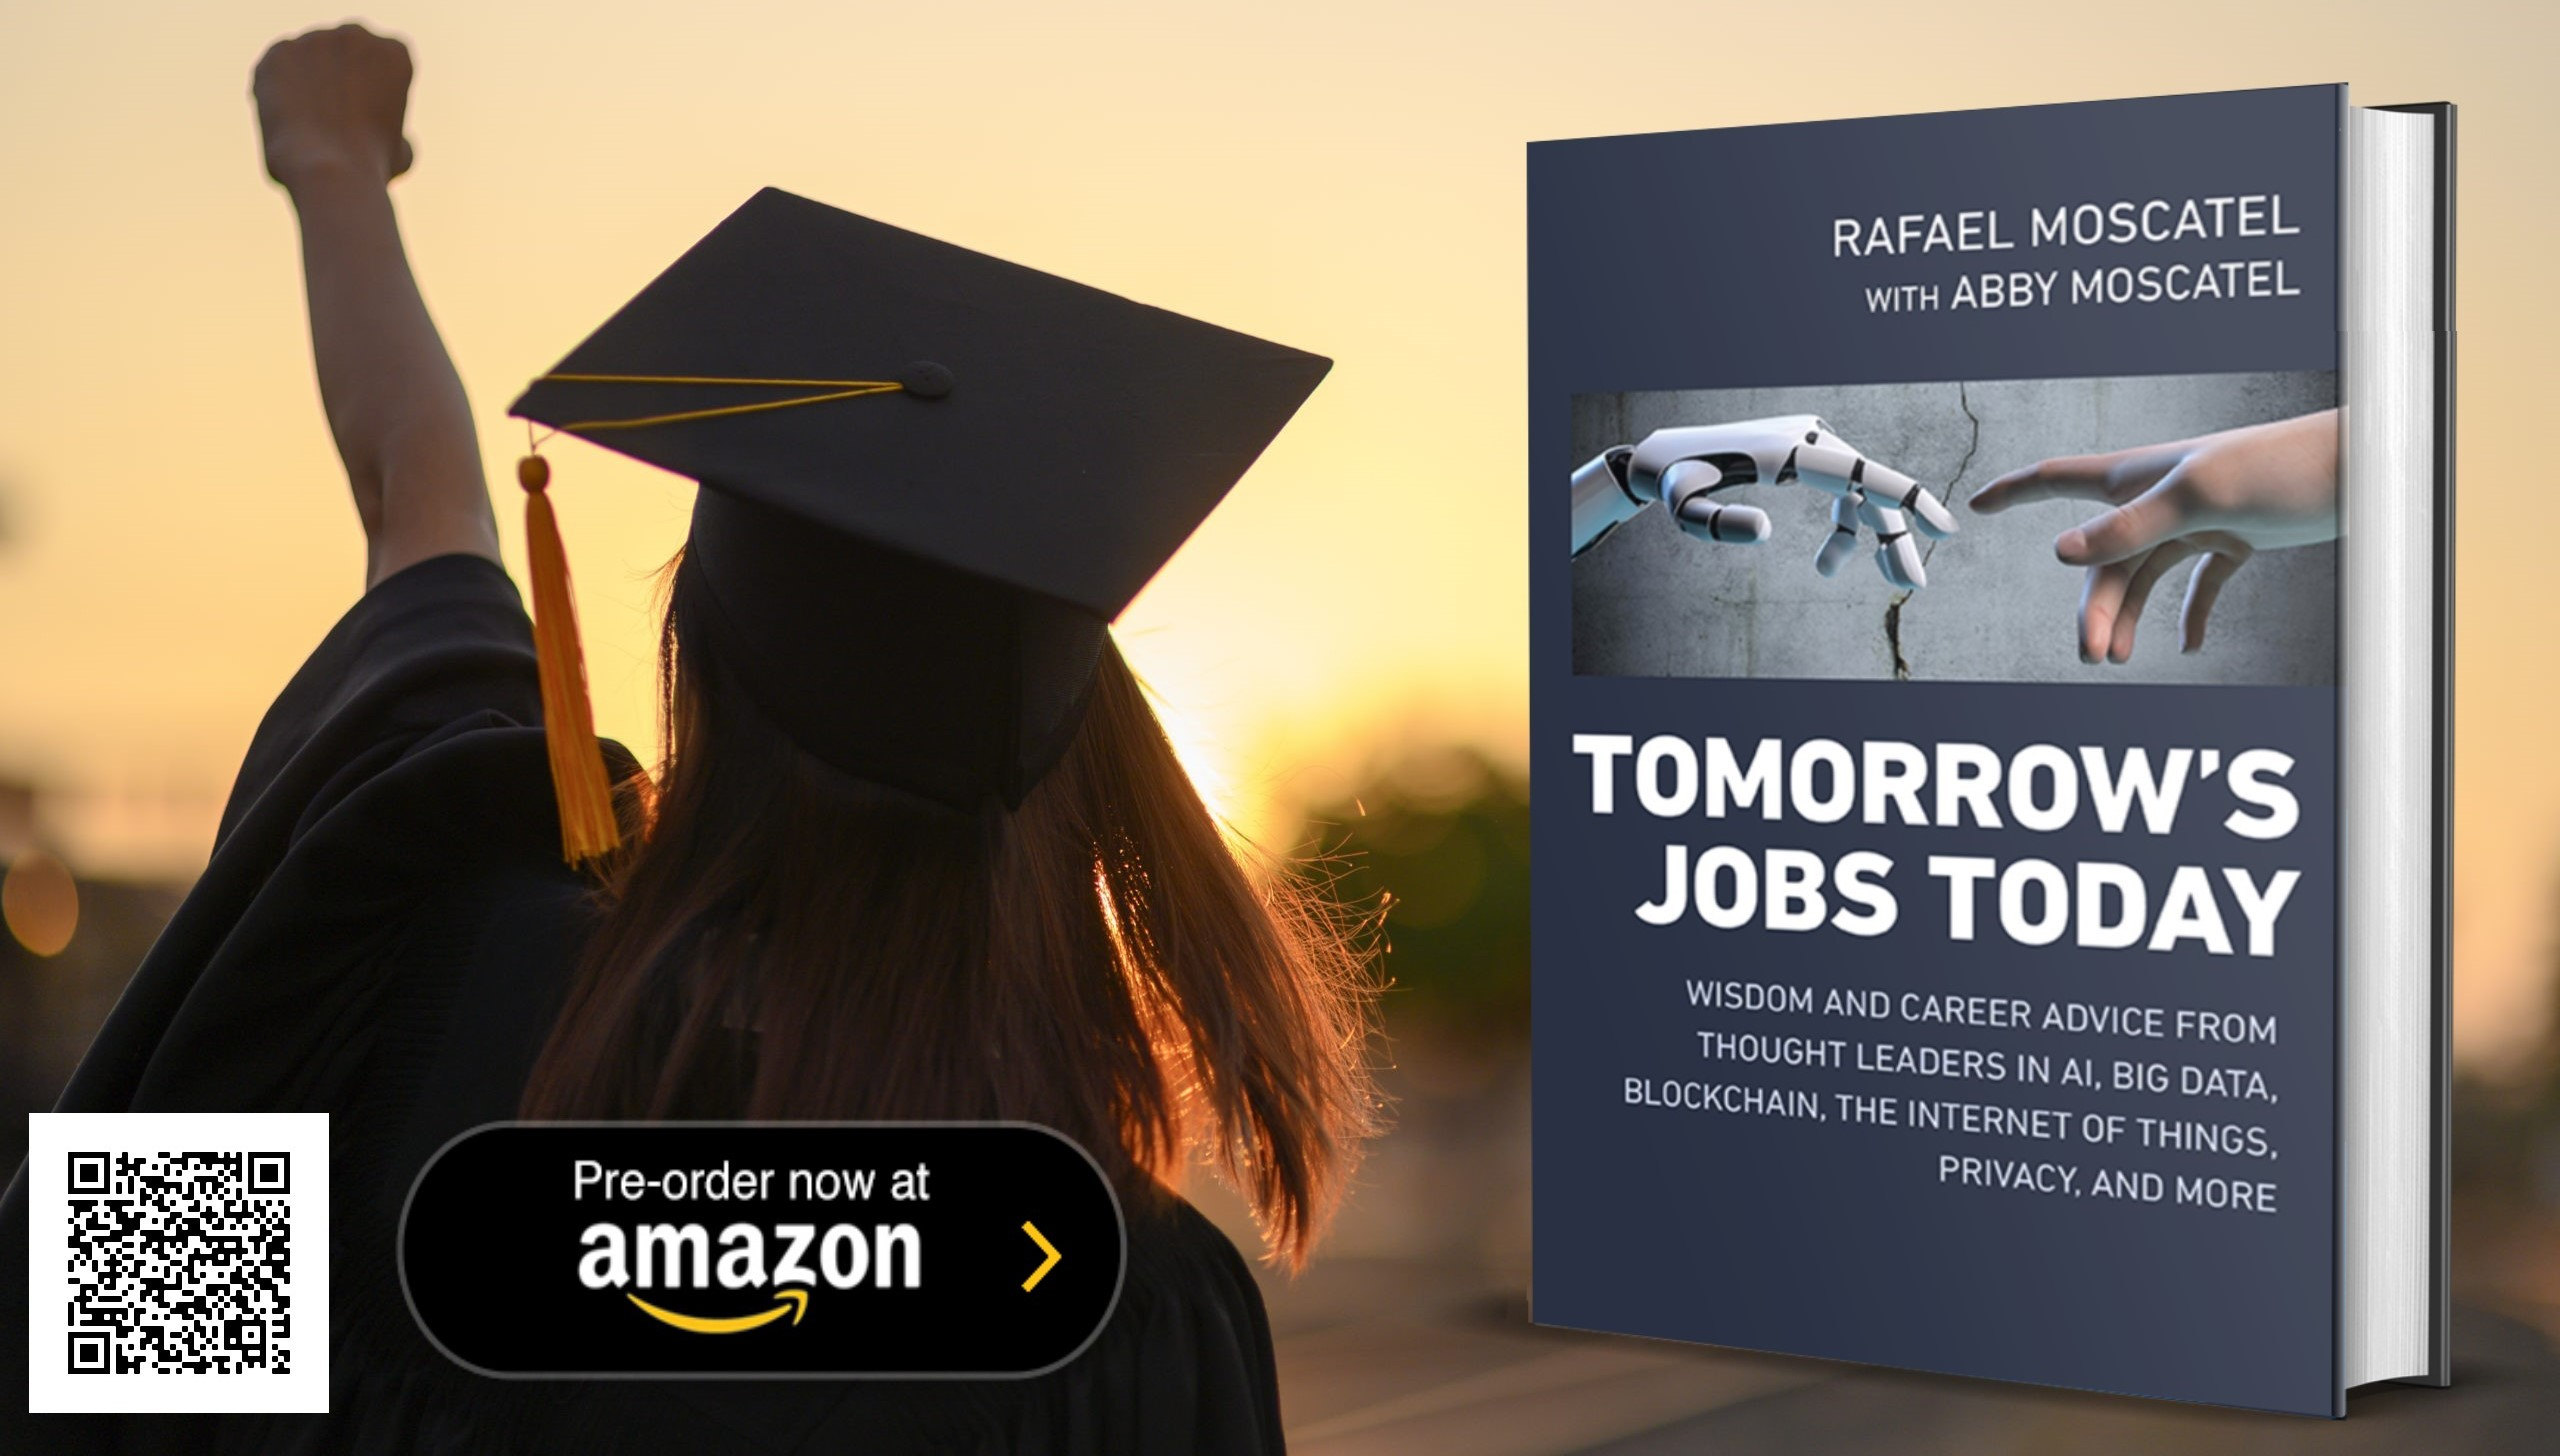 The Perfect Graduation Gift - Tomorrow's Jobs Today